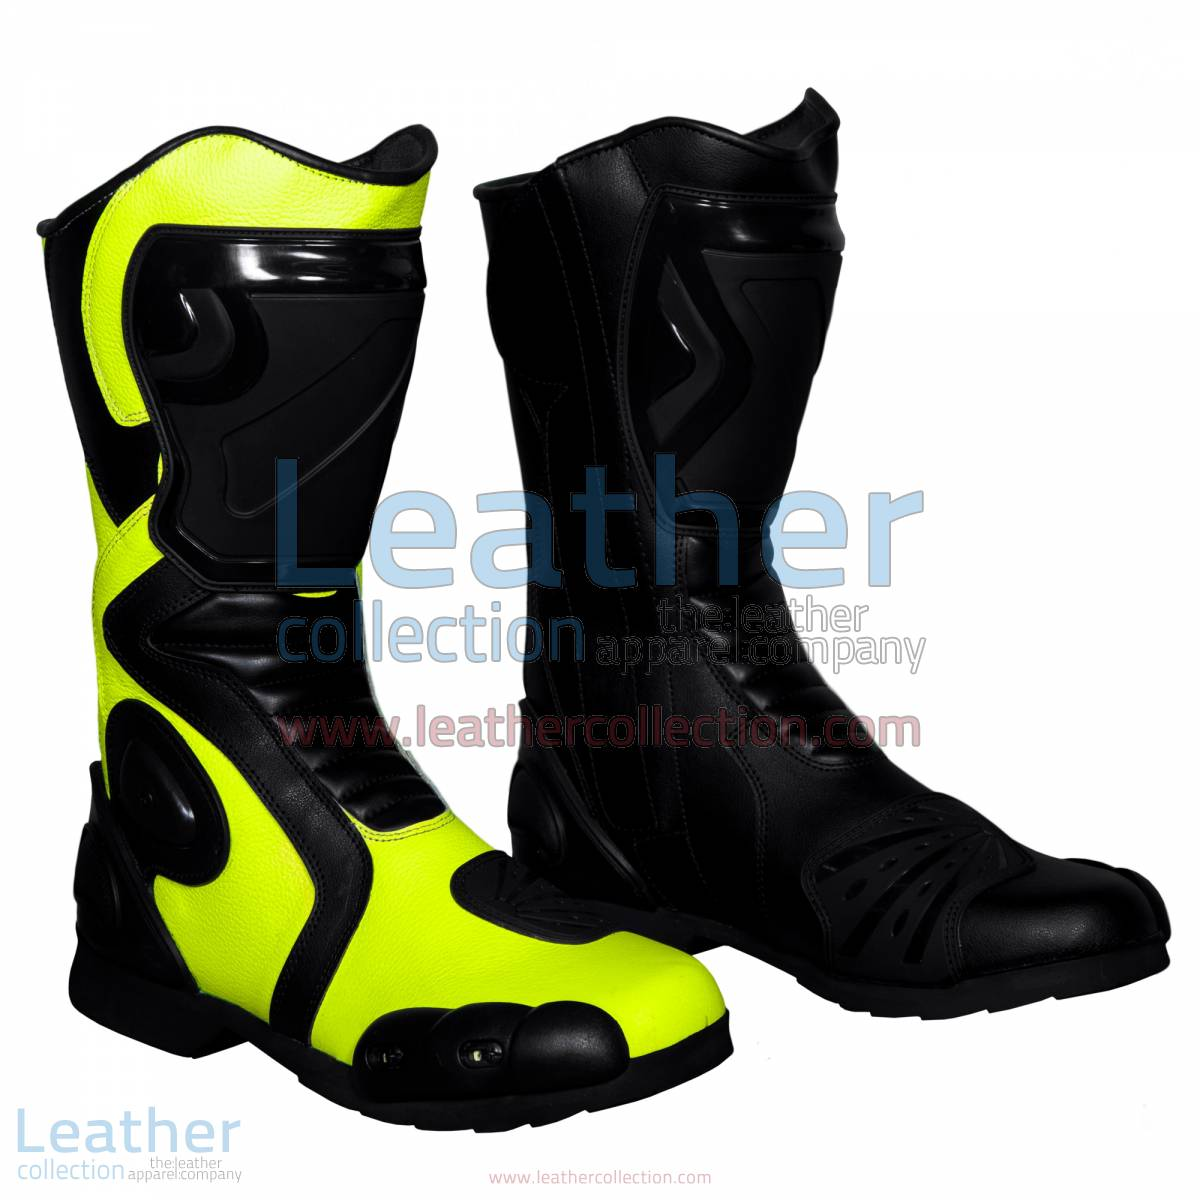 Valentino Rossi Racing Boots | Valentino Rossi boots